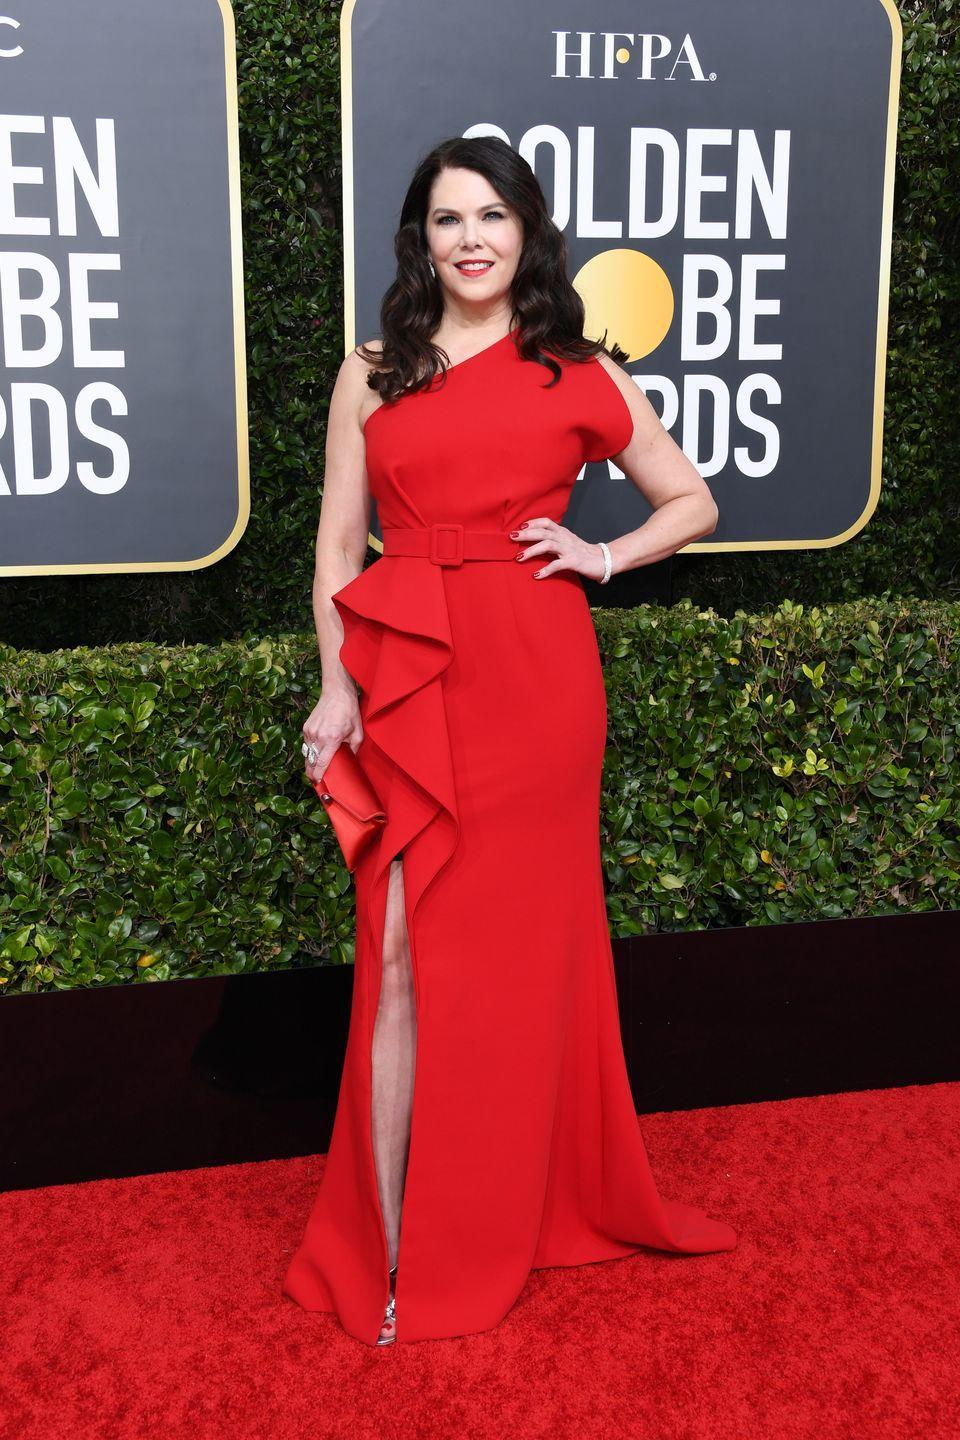 <p>She's a beloved actress from <em>Gilmore Girls</em>. She's also incredibly funny. A winning combination, if you ask us.</p>